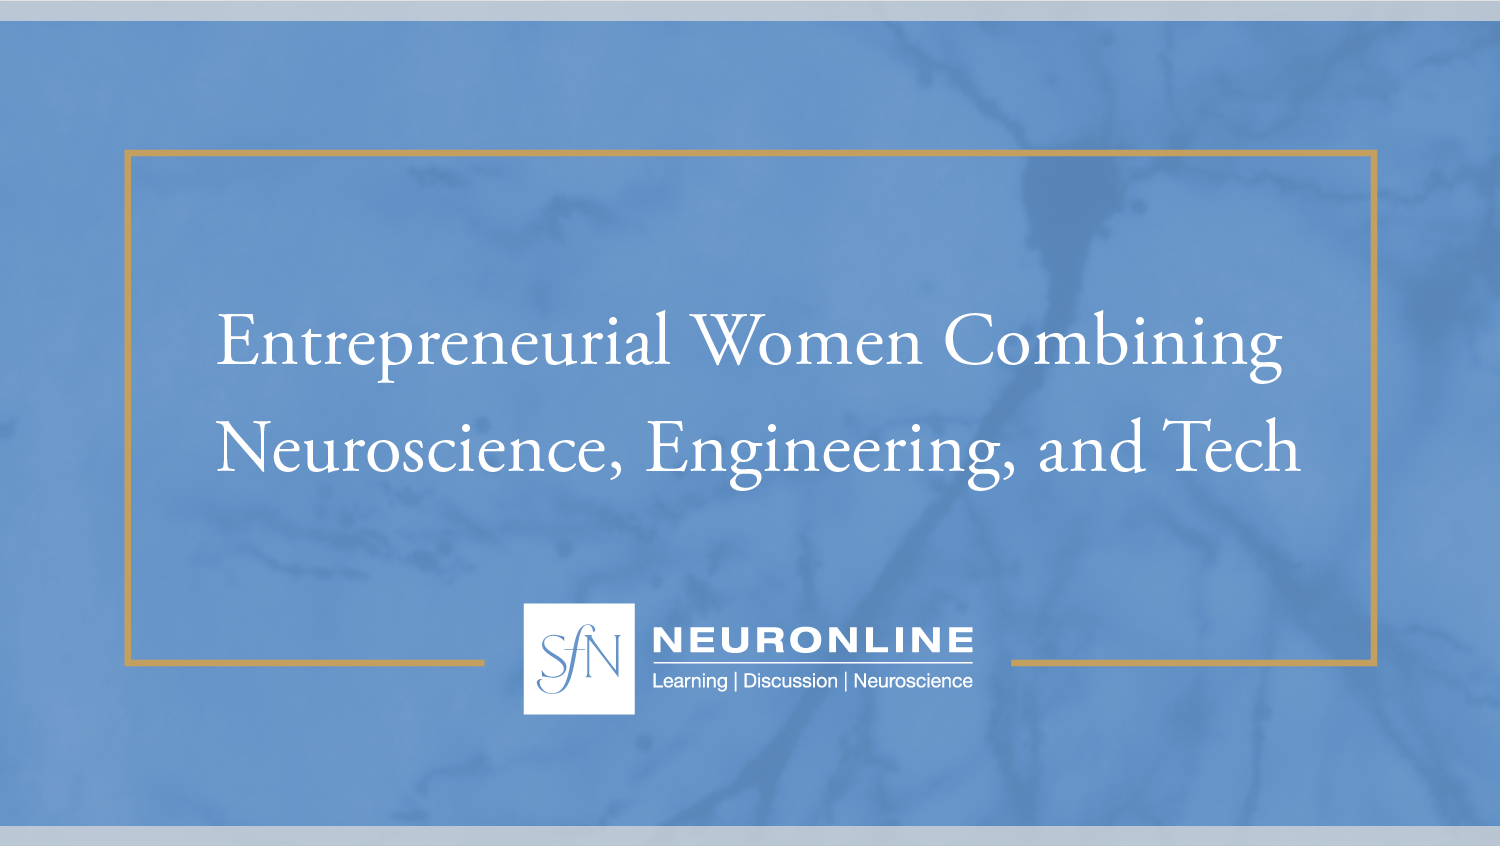 Title card stating 'Entrepreneurial Women Combining Neuroscience, Engineering, and Tech' on a blue background with the Neuronline logo below.